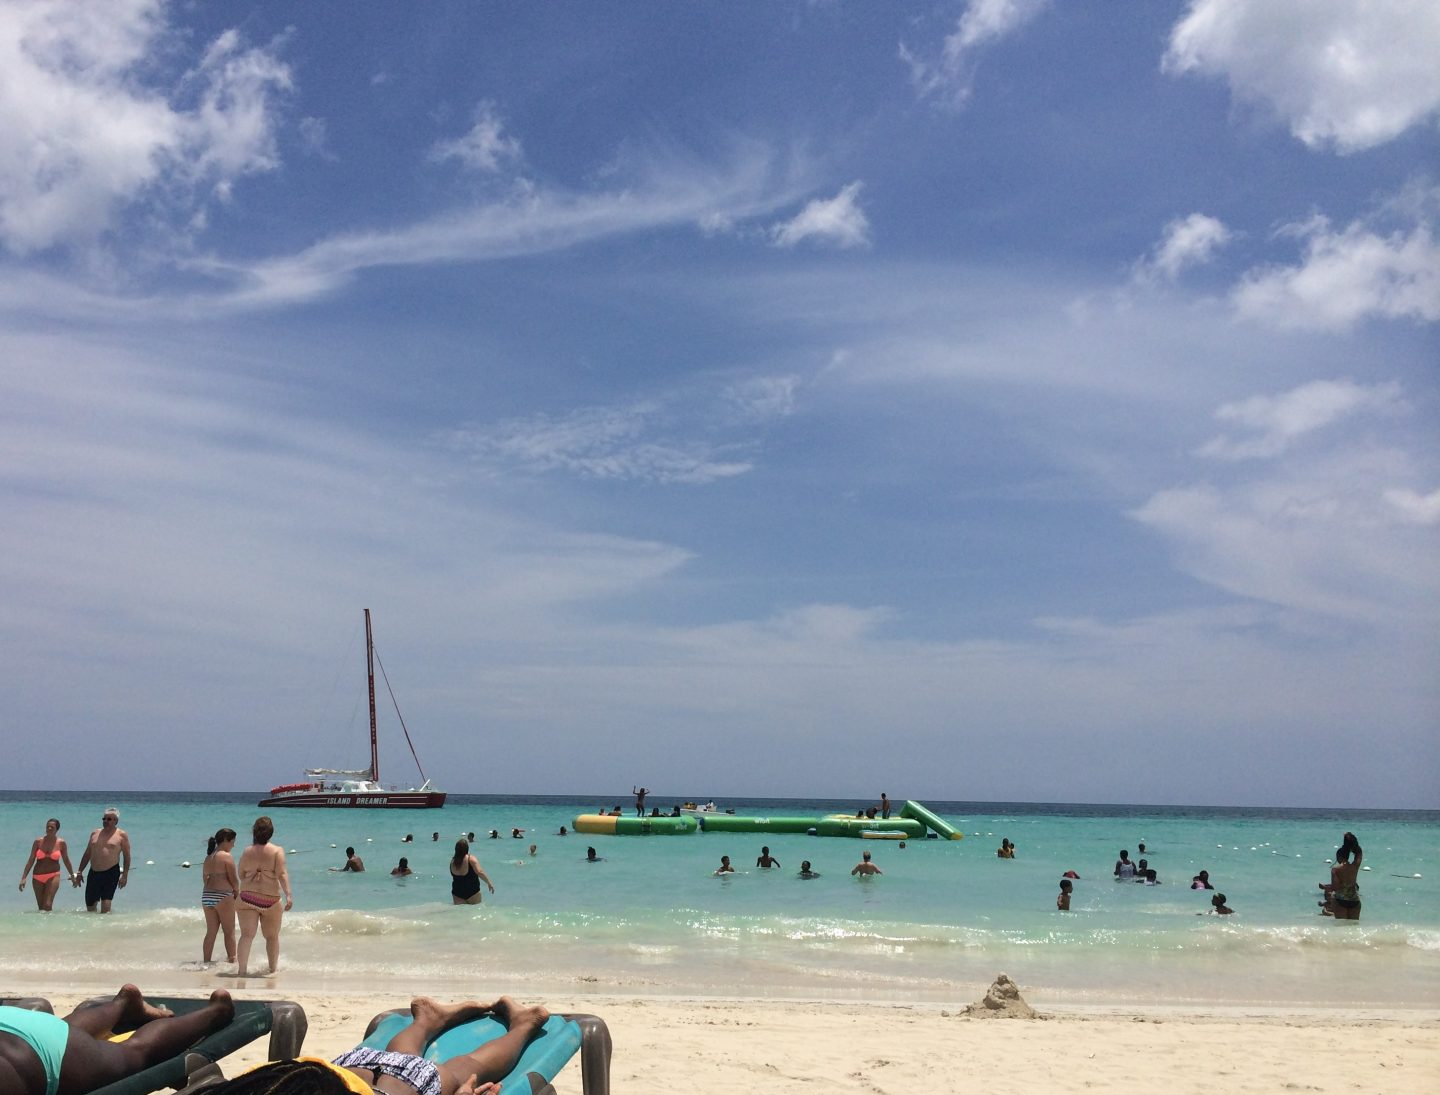 People sunbathing and water inflatables, swimmers and a boat in the water at 7 Mile Beach